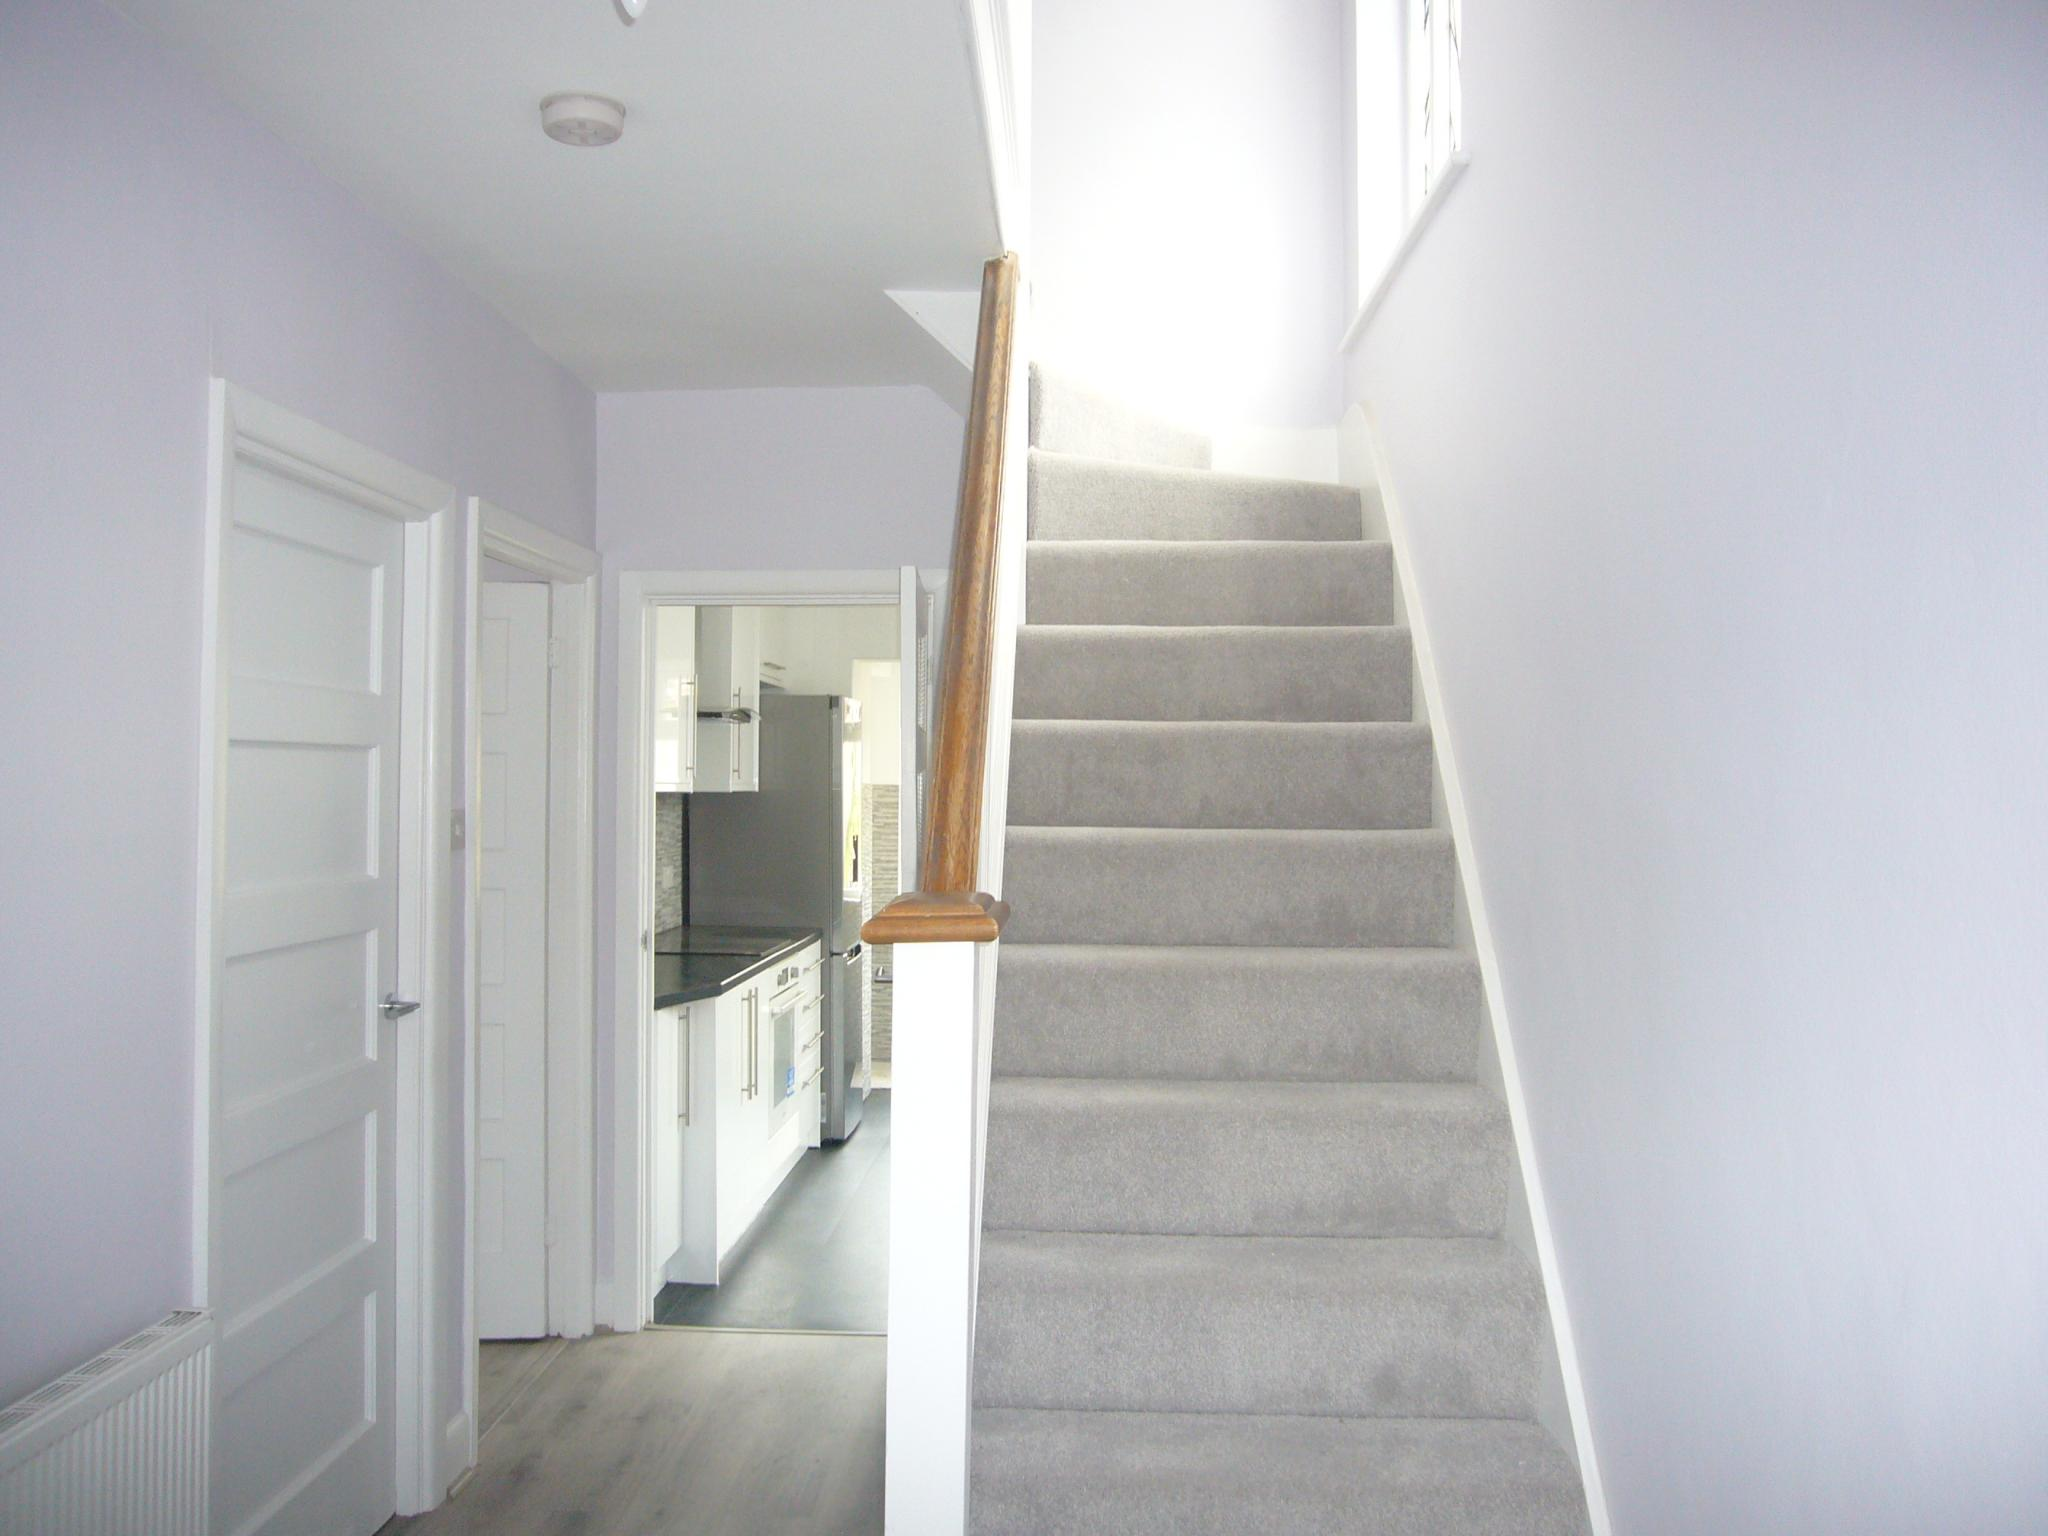 3 bedroom semi-detached house Let Agreed in Epsom - Photograph 6.